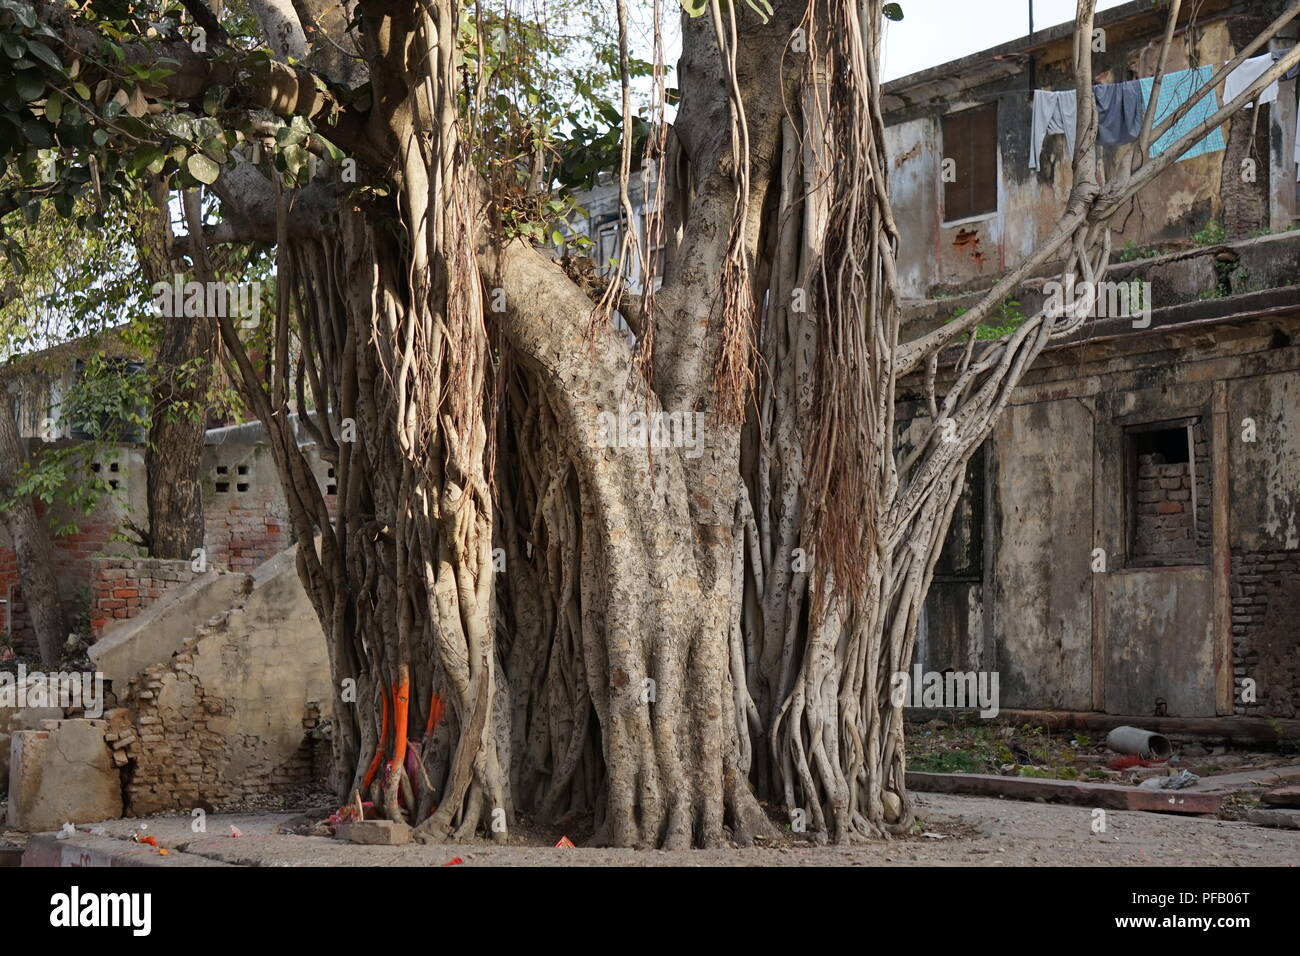 Large tree in the Bharatpur city in India - Stock Image